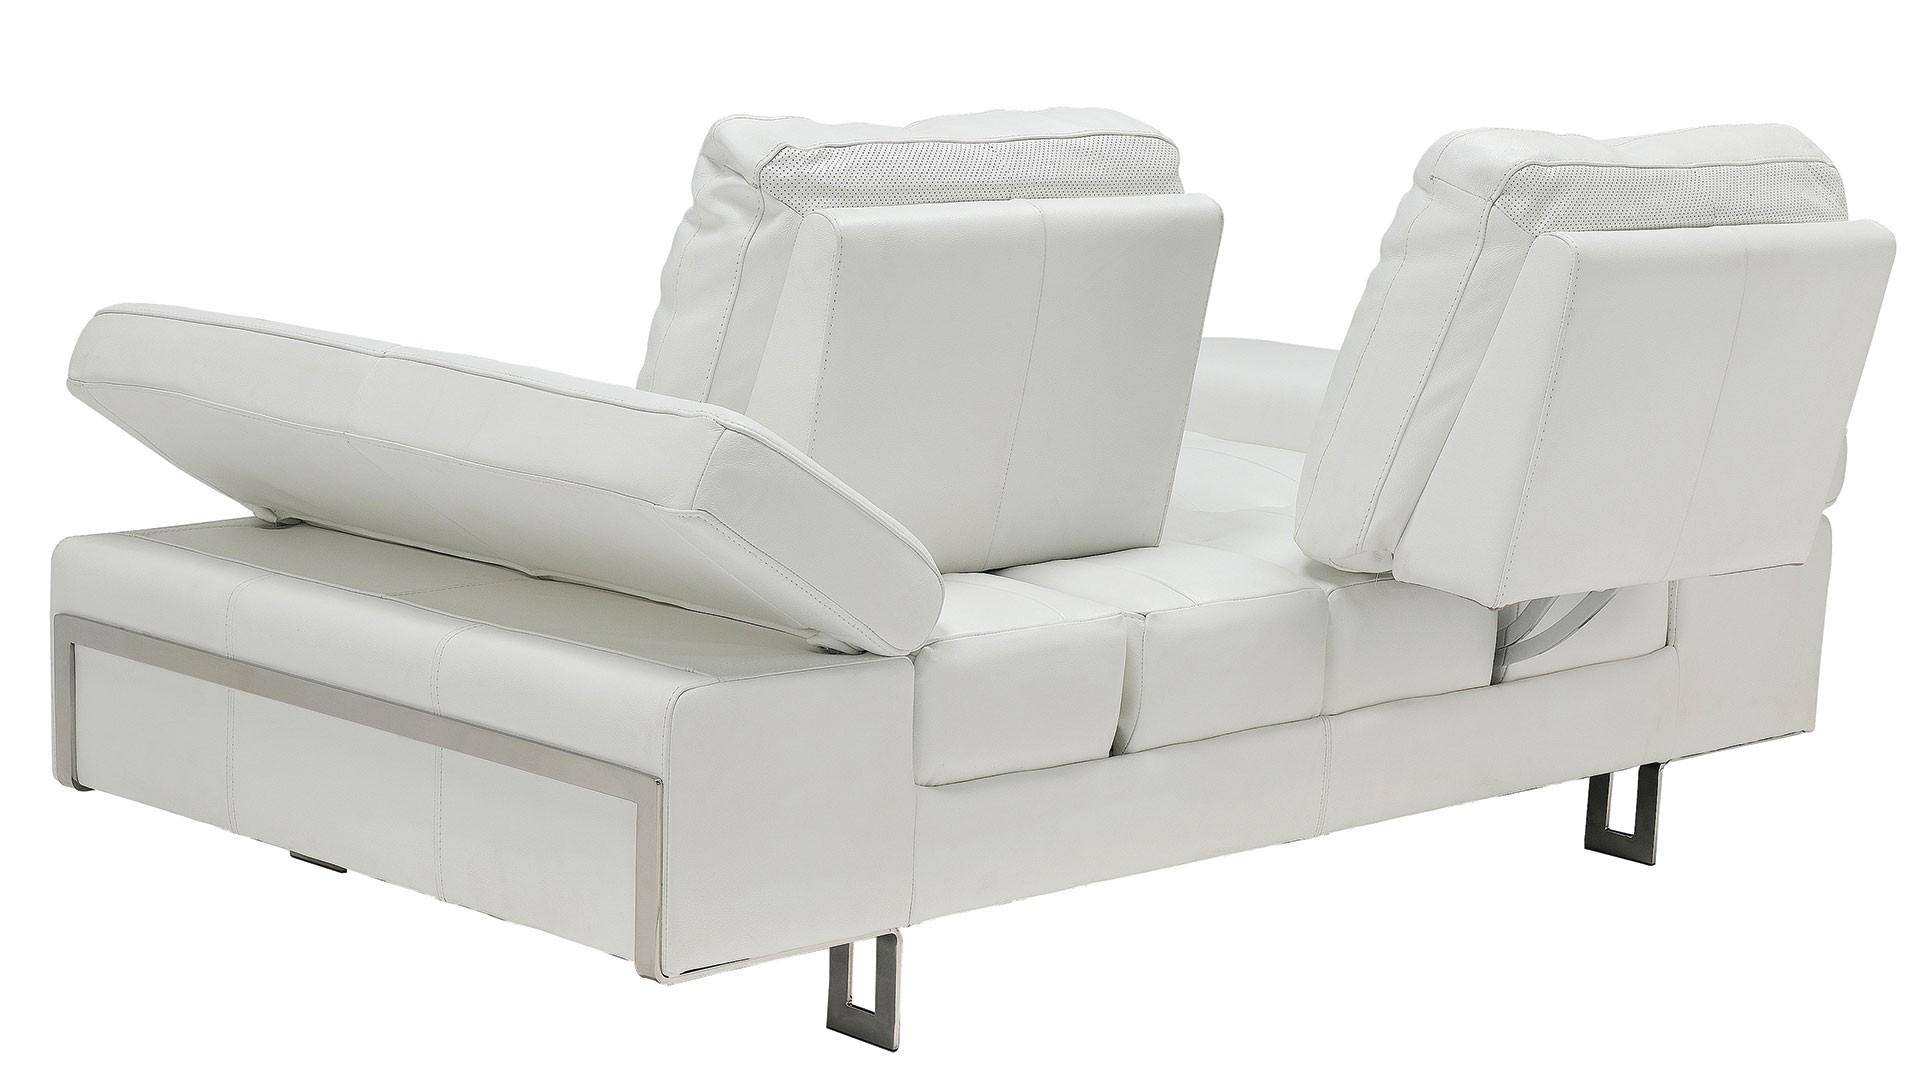 At Home USA Gia White Luxury Italian Leather Ultra Modern Sofa Set ...